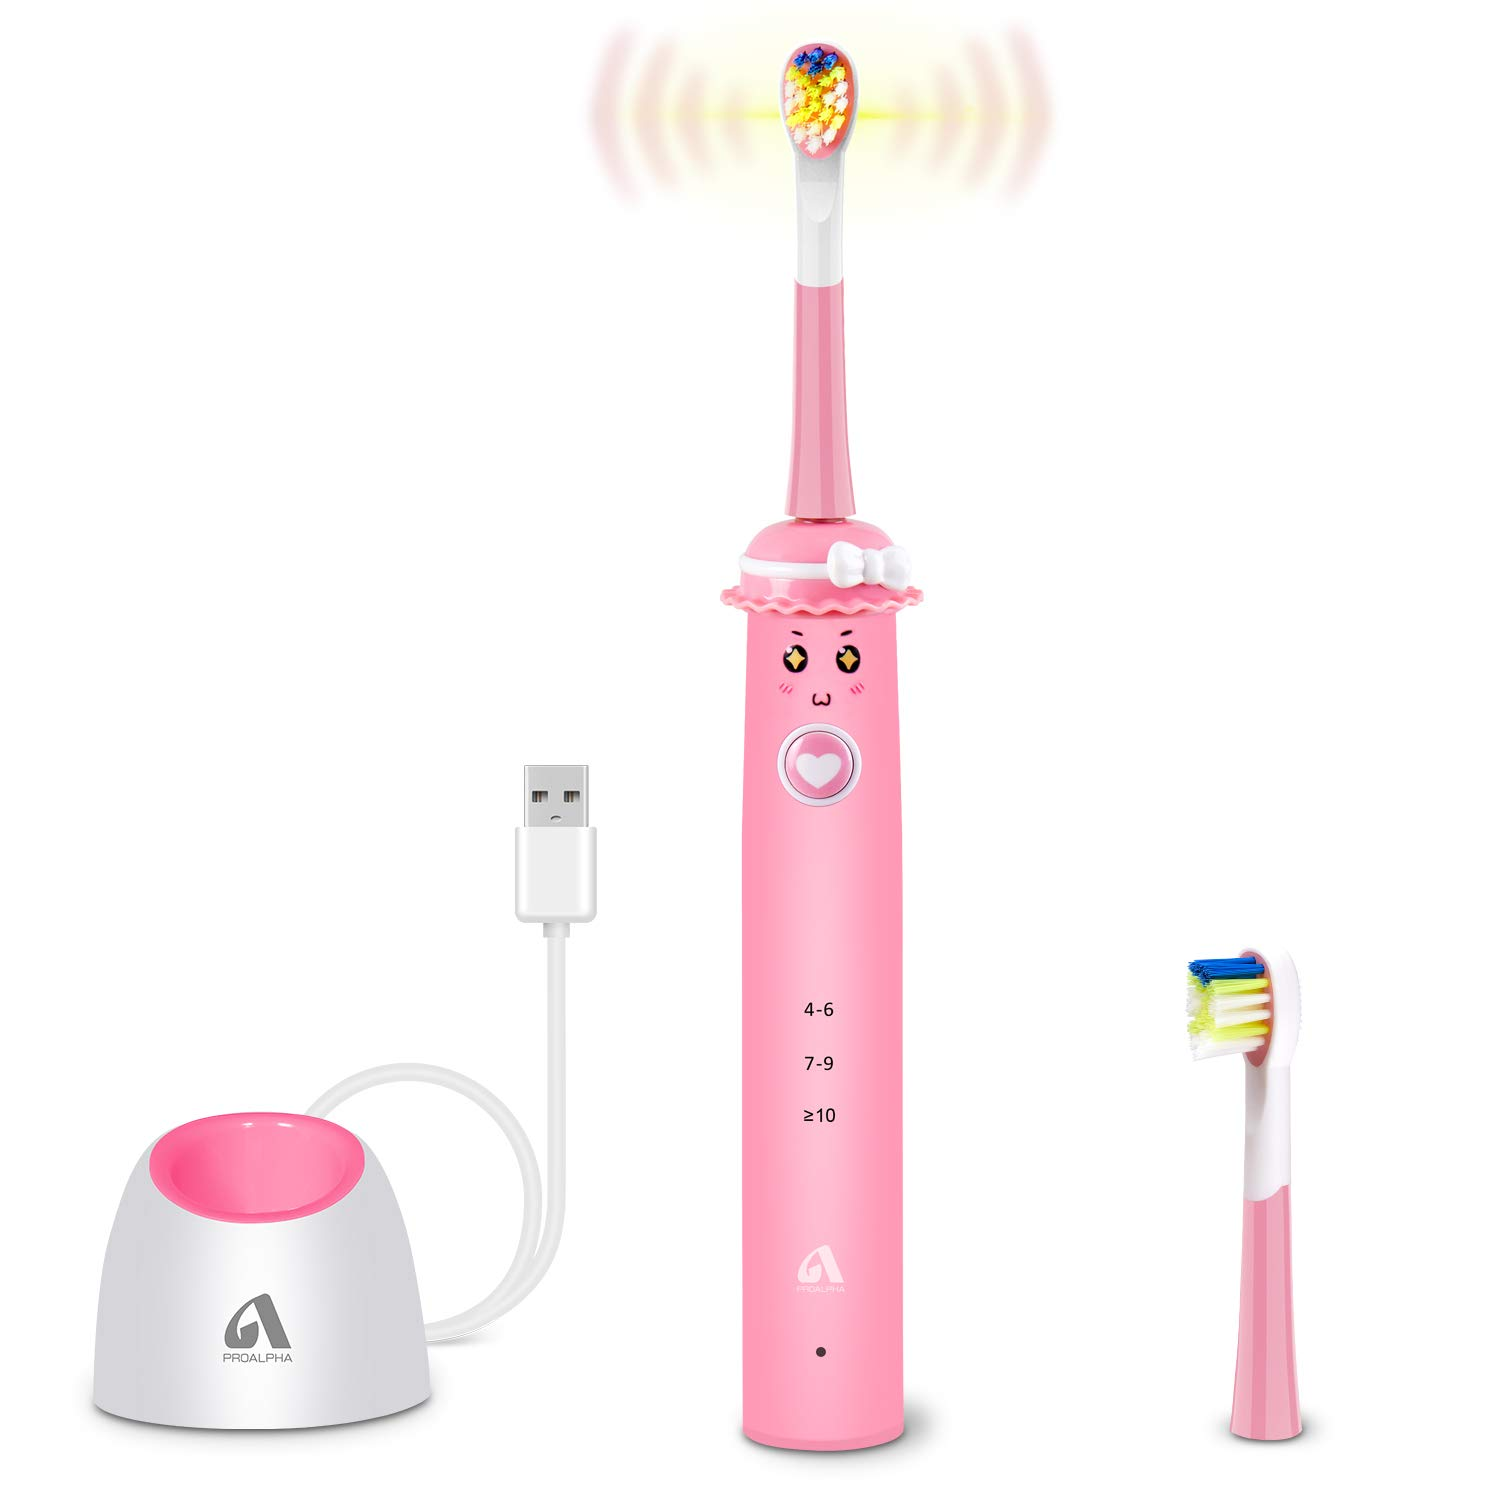 Sonic Whitening Kids Electric Toothbrushes, Wireless USB Rechargeable Toothbrush With 2 Reminder Heads, 3 Modes with Timer(Pink)